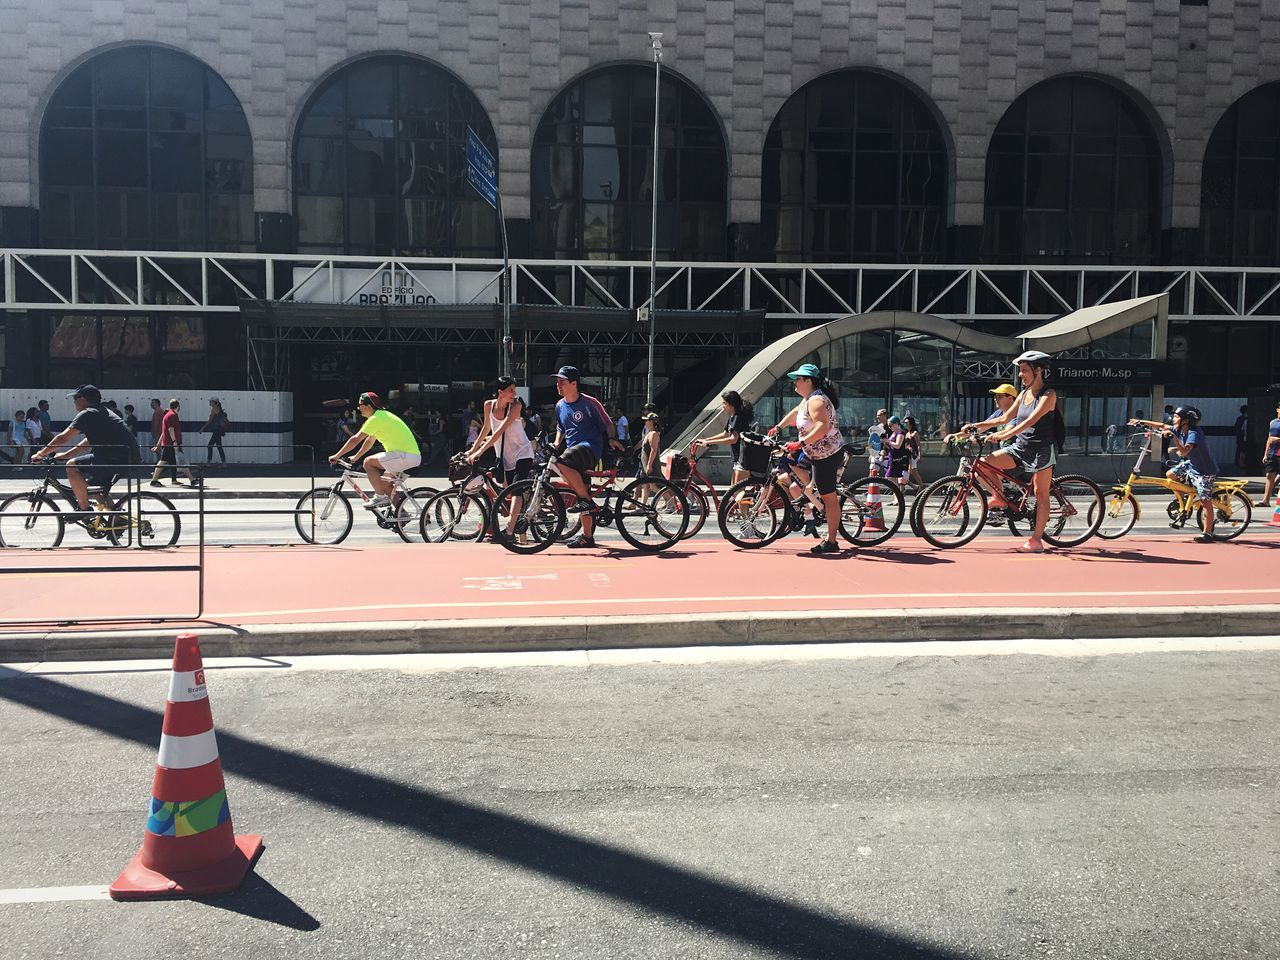 Athletes Riding Bicycles On Track